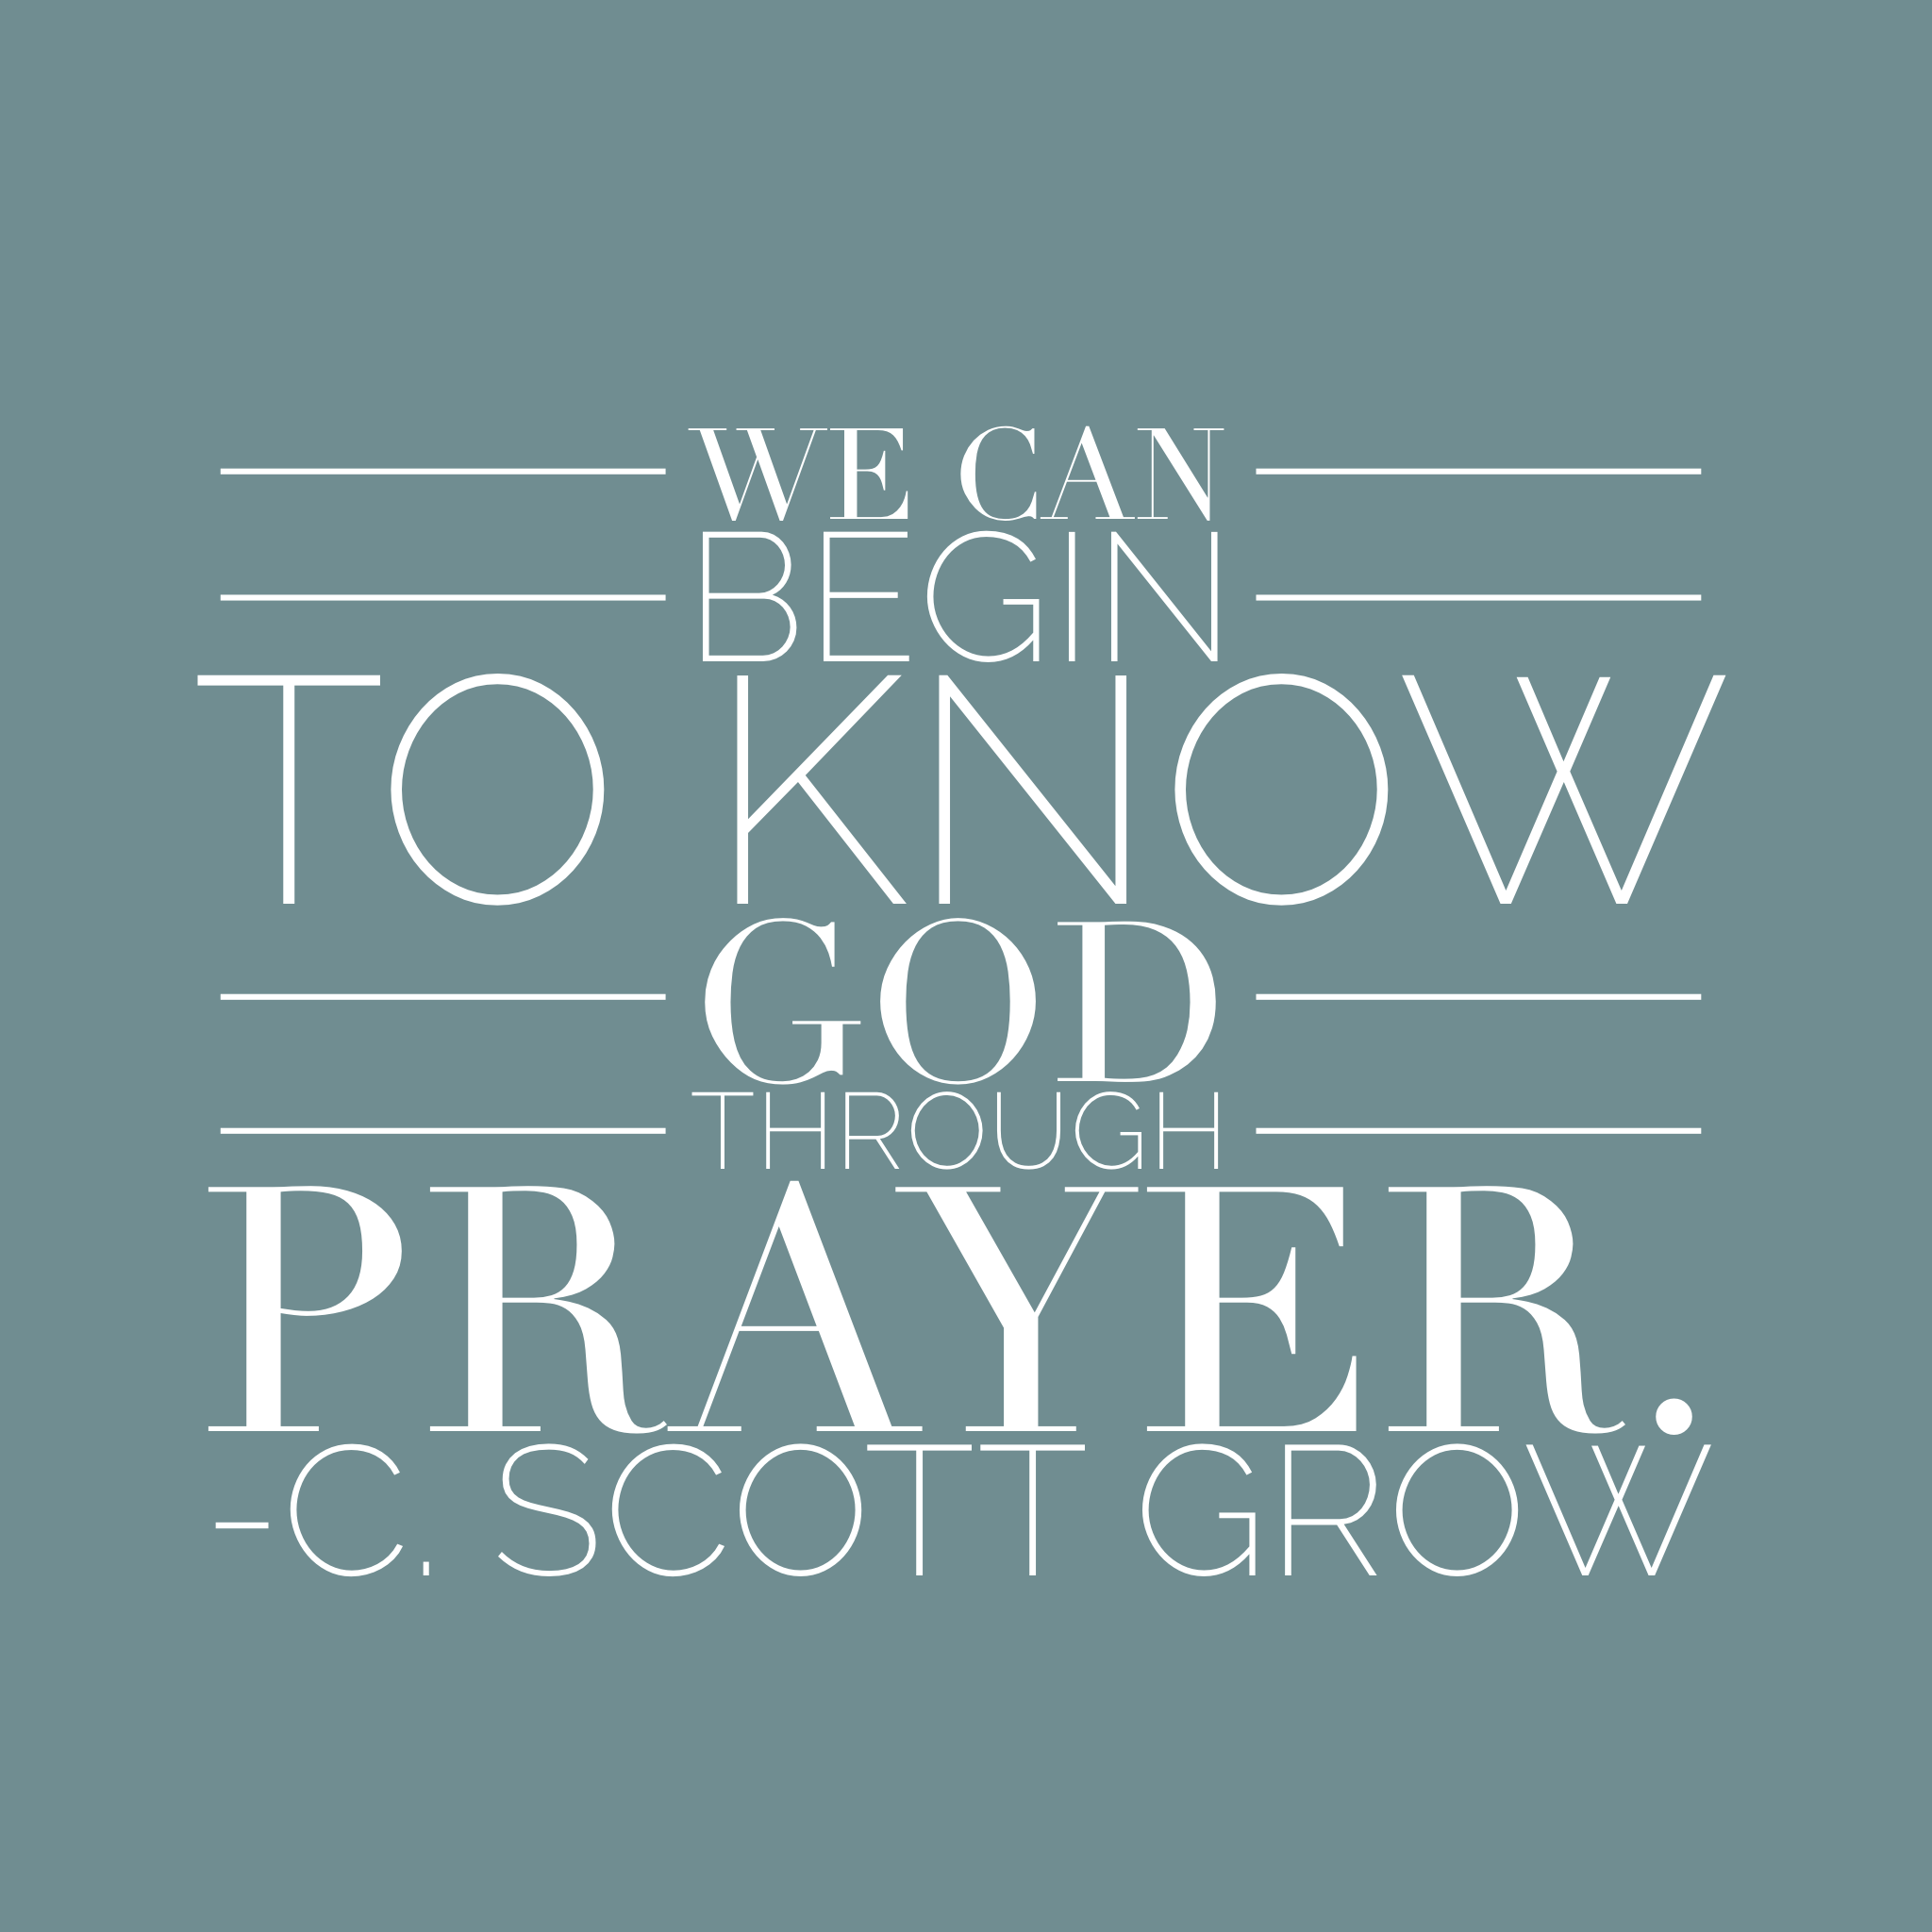 Religious Motivational Quotes Ldsquotes Ldsconf We Can Begin To Know God Through Prayer